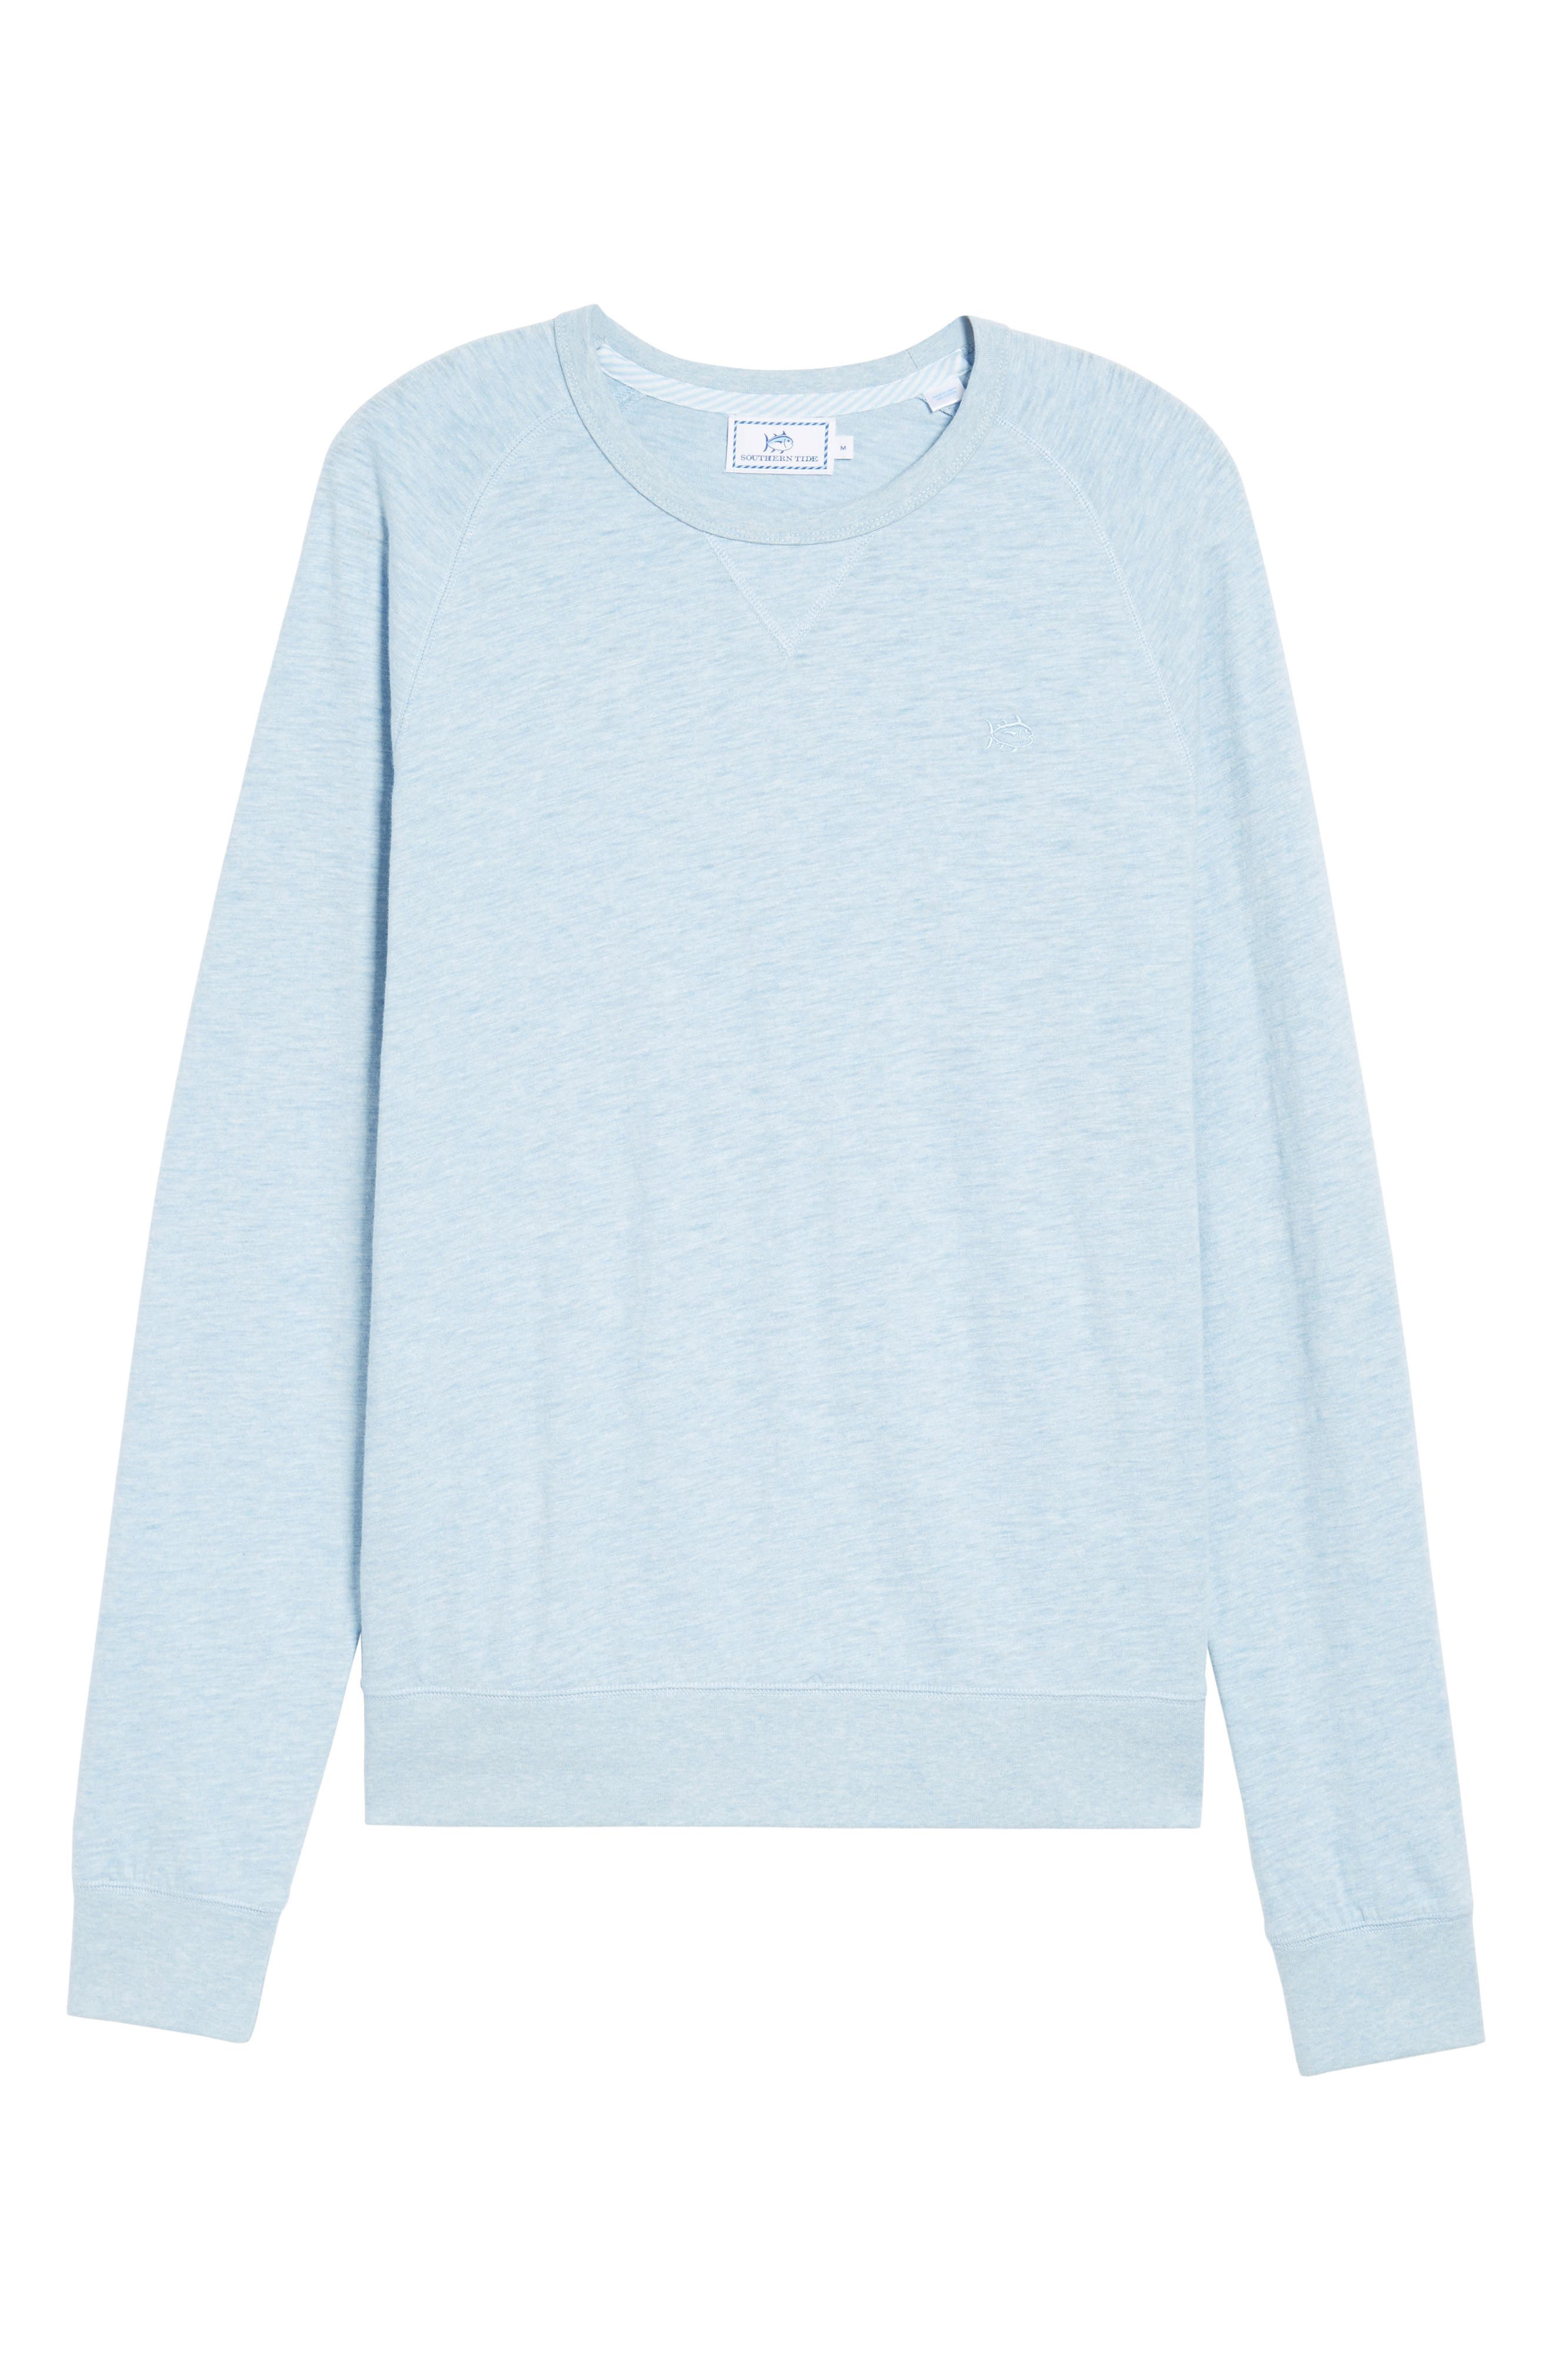 Ocean Course Crewneck Sweatshirt,                             Alternate thumbnail 6, color,                             450